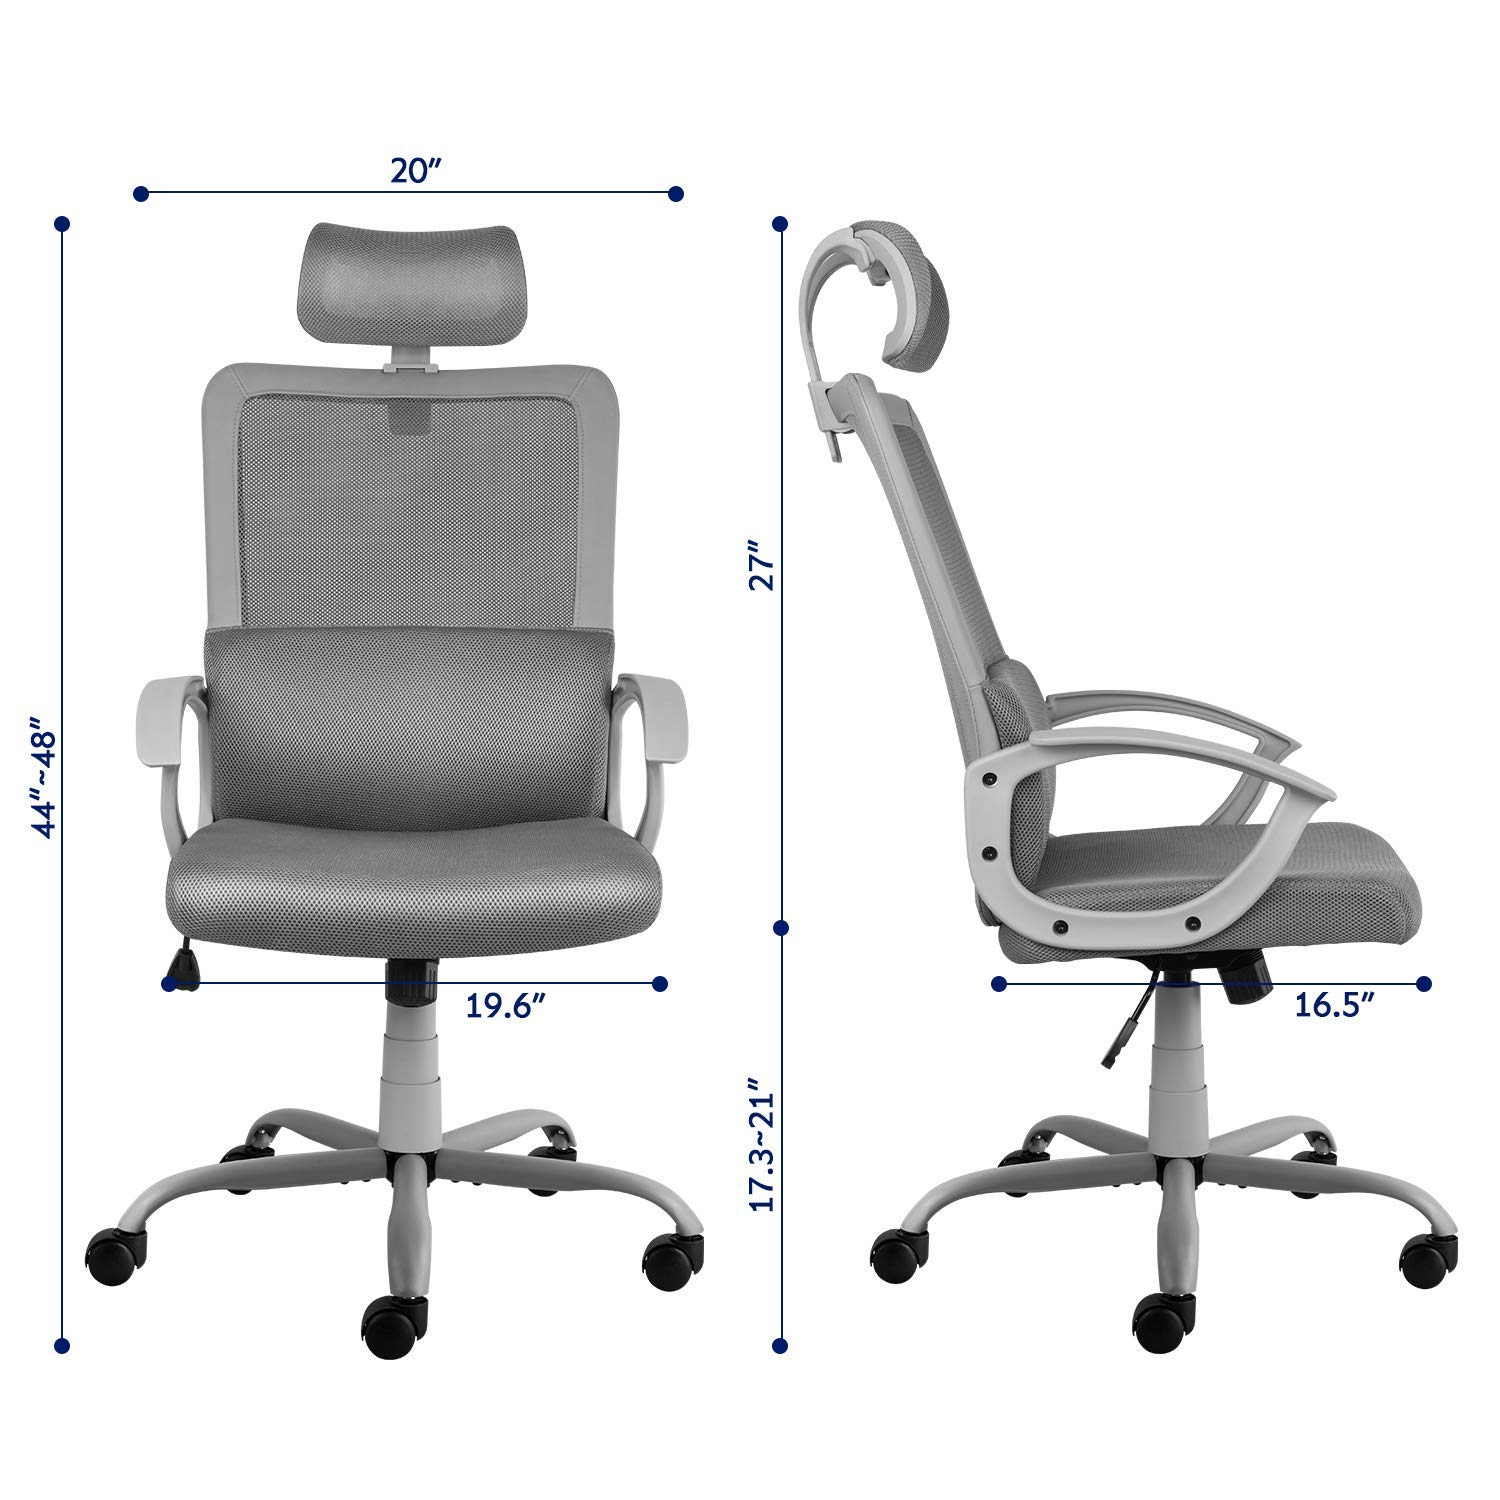 Smugdesk Ergonomic Office Chair High Back Mesh Office Chair Adjustable Headrest Computer Desk Chair for Lumbar Support, Grey by Smugdesk (Image #8)